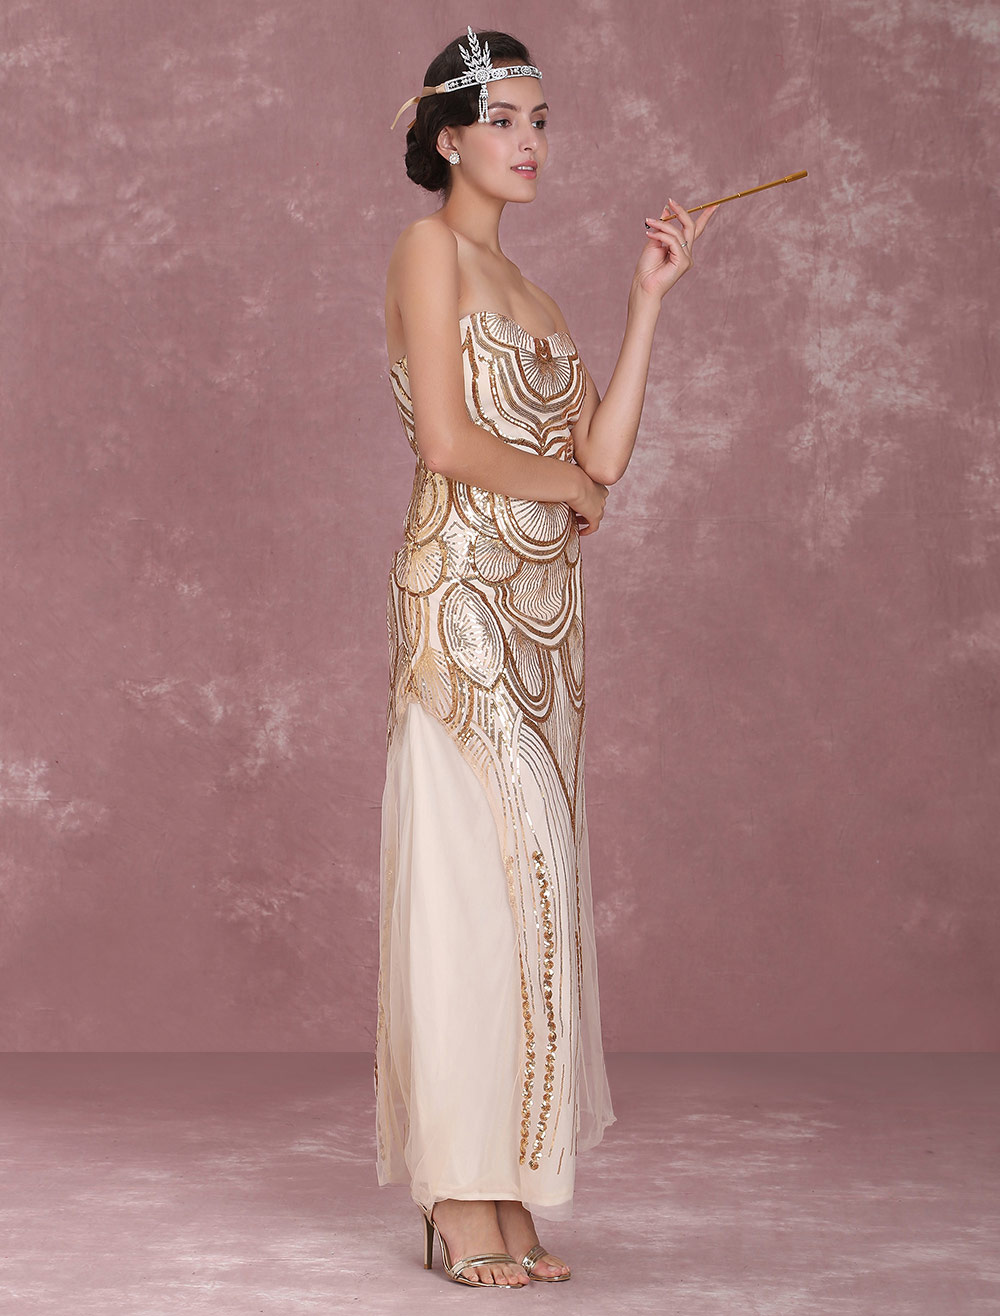 Great Gatsby Flapper Dress 1920s Vintage Costume Women S